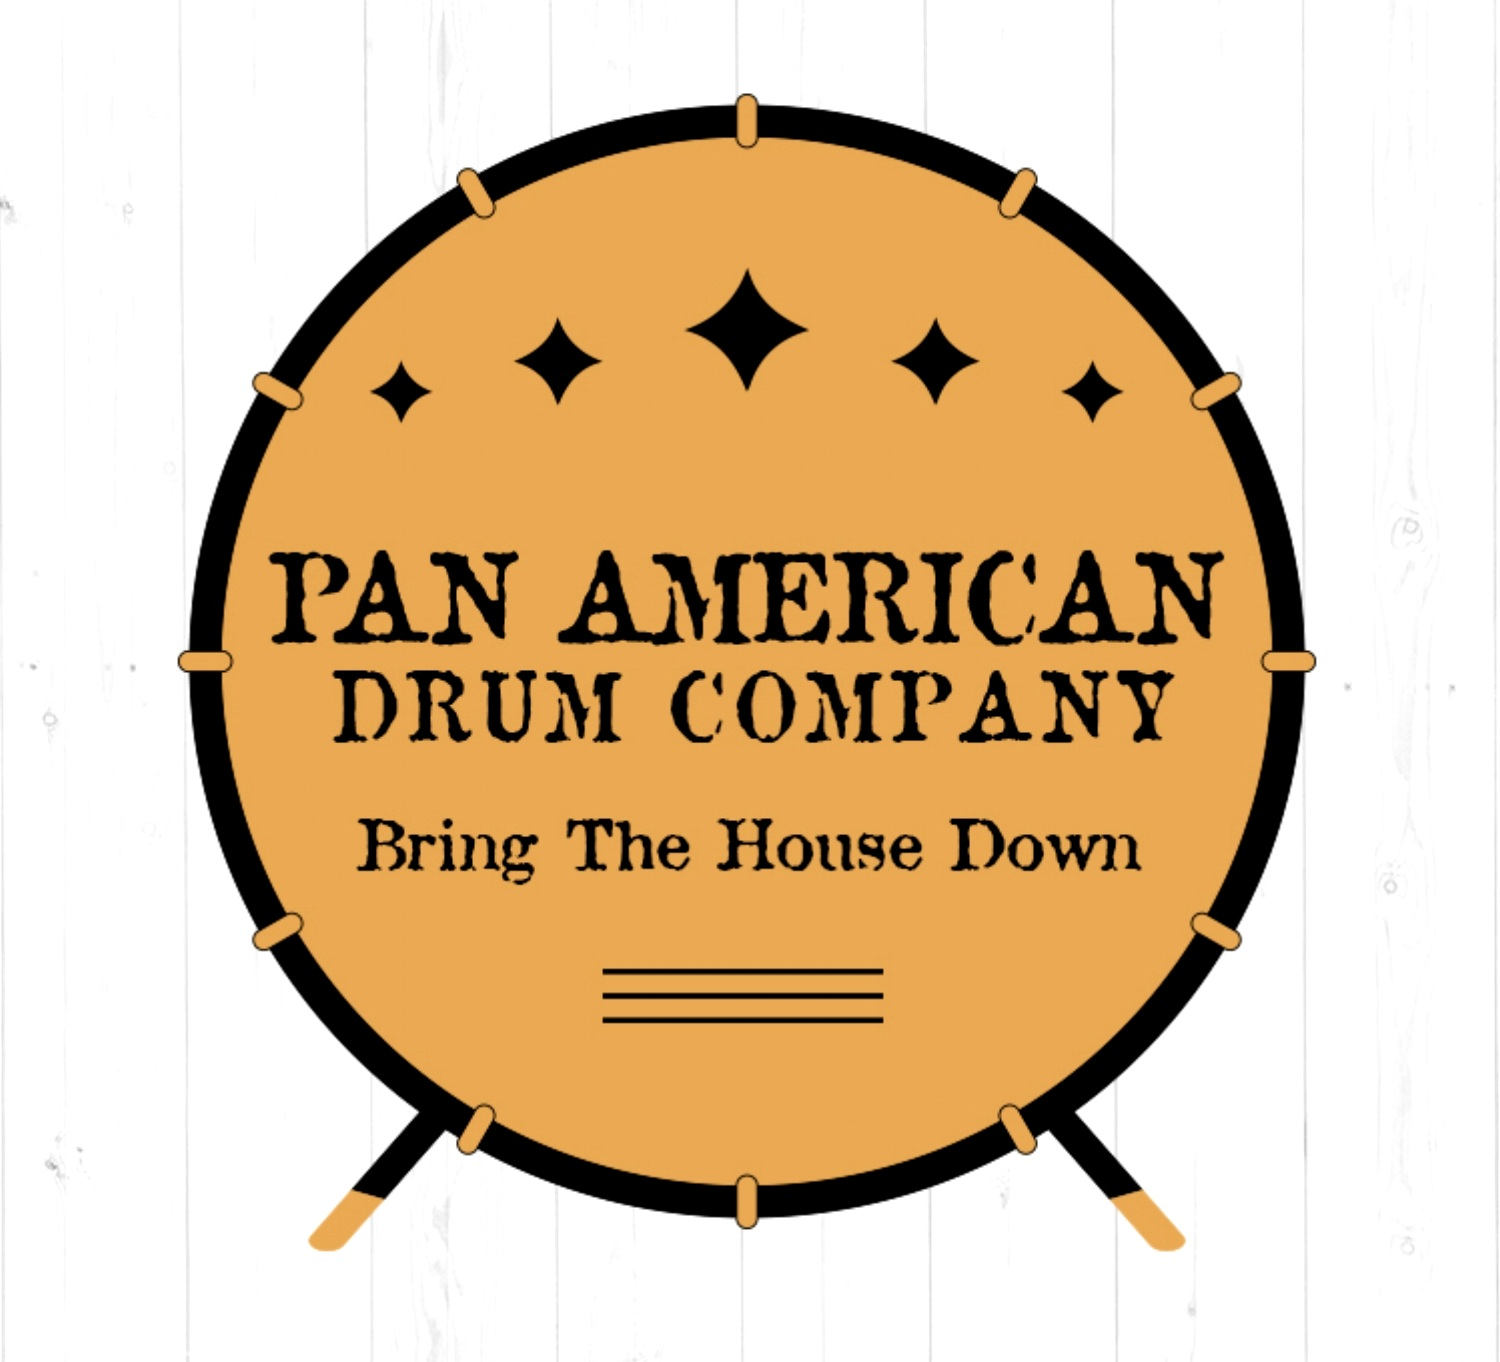 Pan American Drum Co